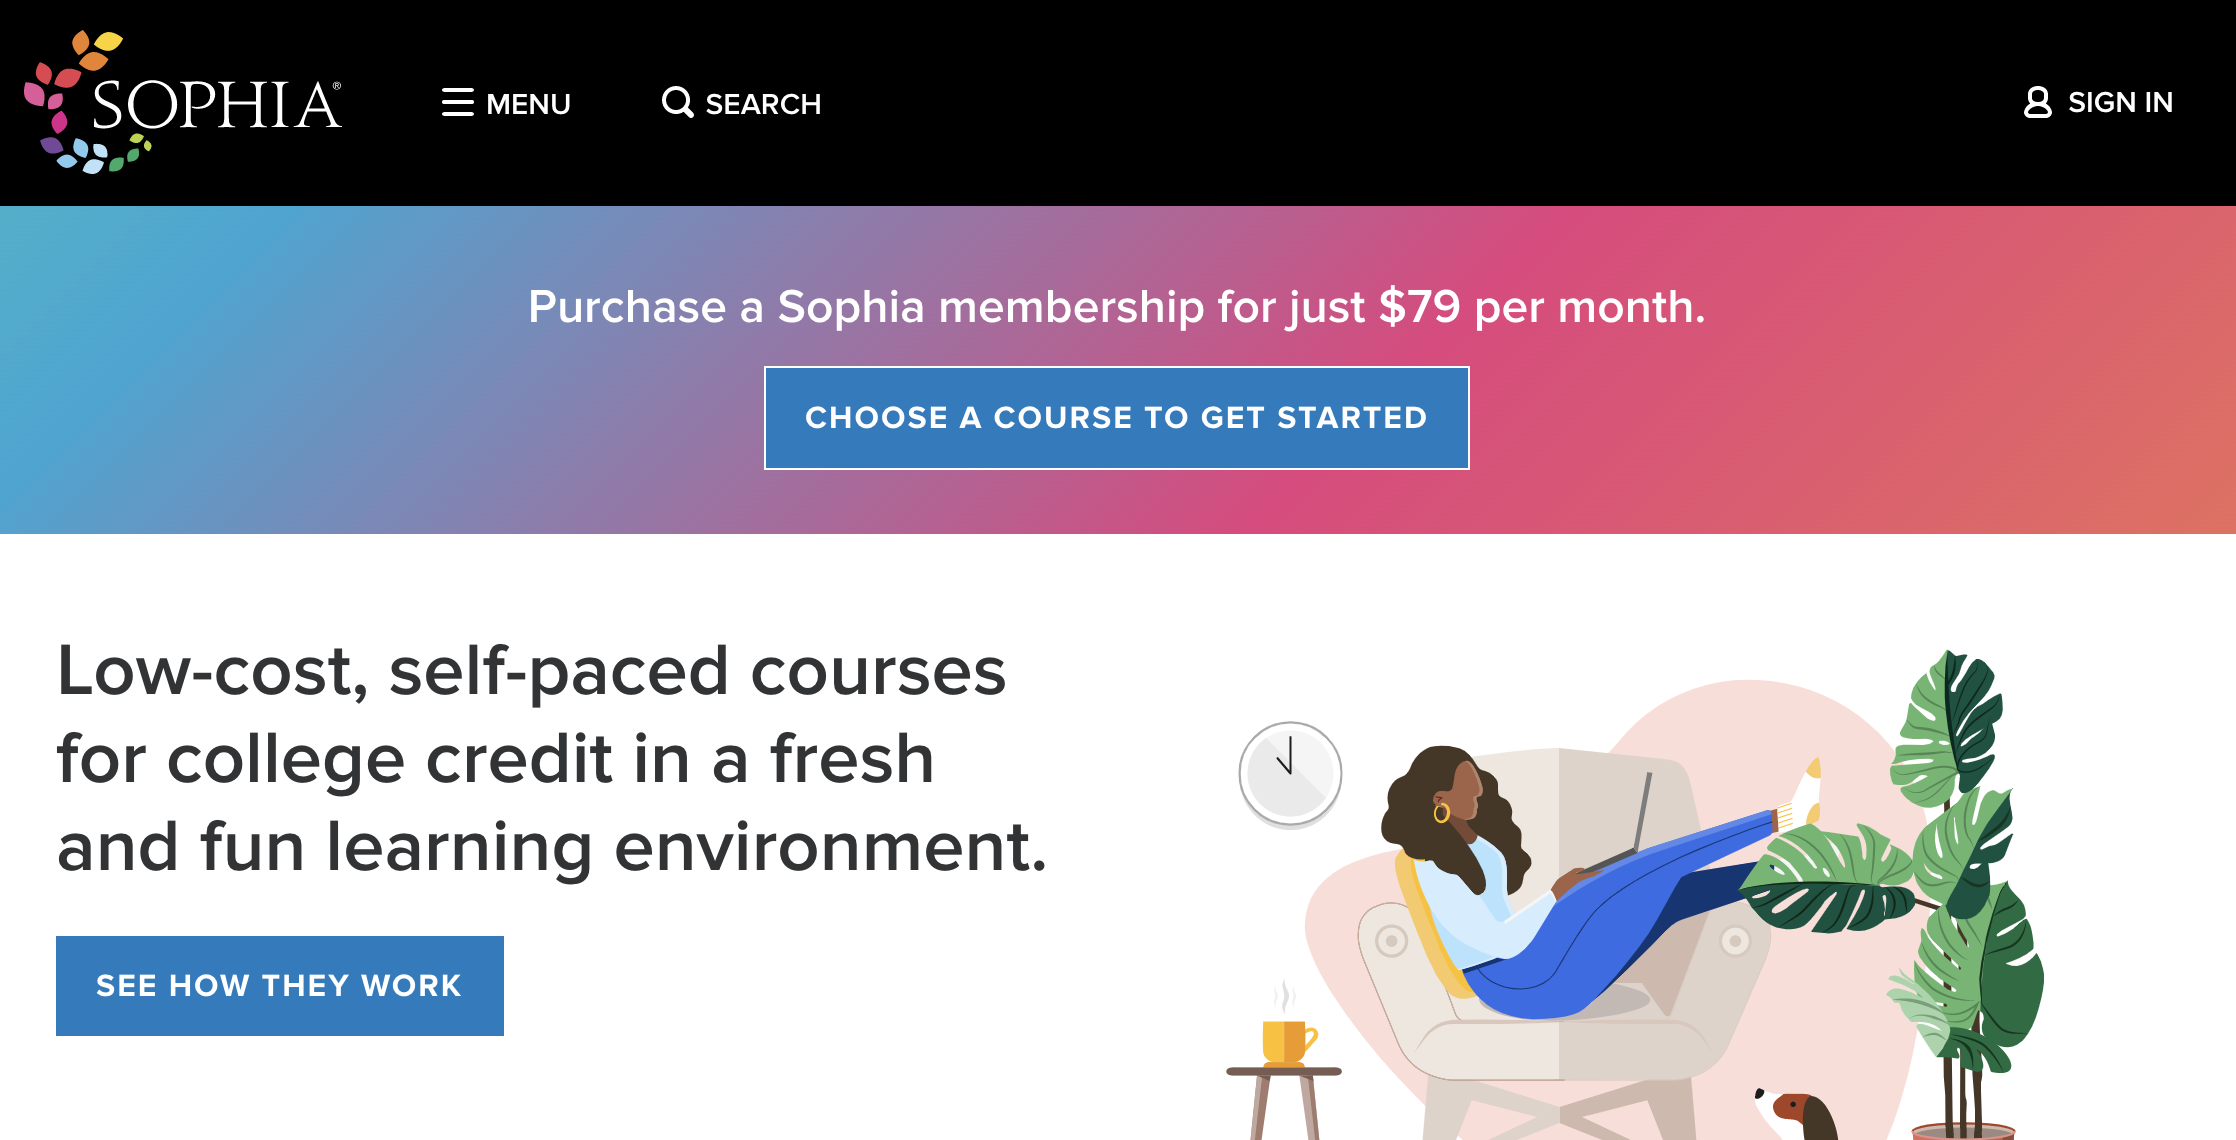 Image of a dark skinned person lounging in a chair while looking at a laptop and buttons to choose a course to get started and see how the courses work.